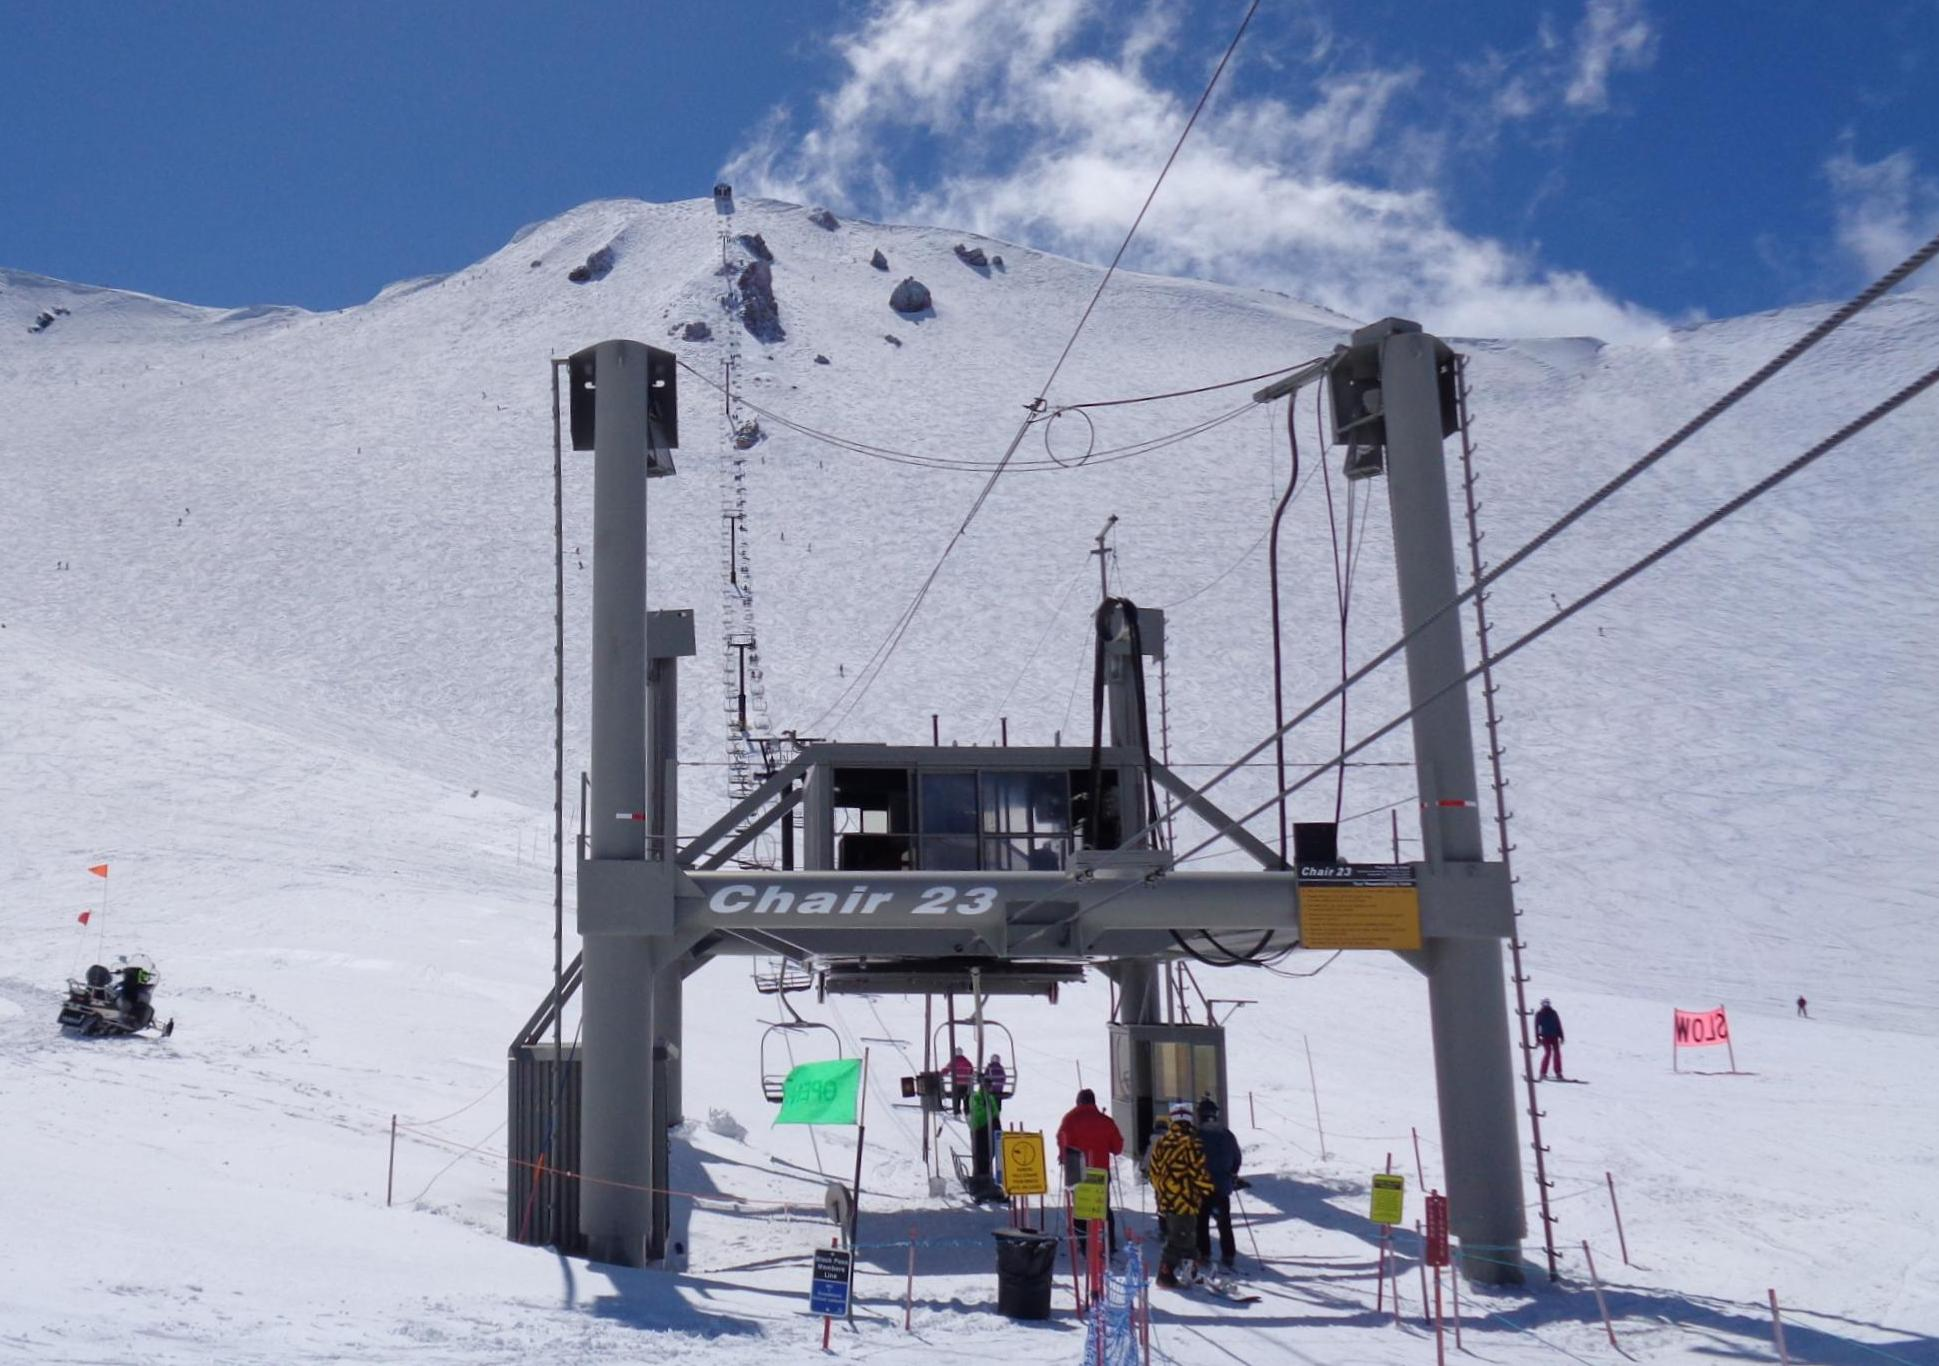 Chair 23 View